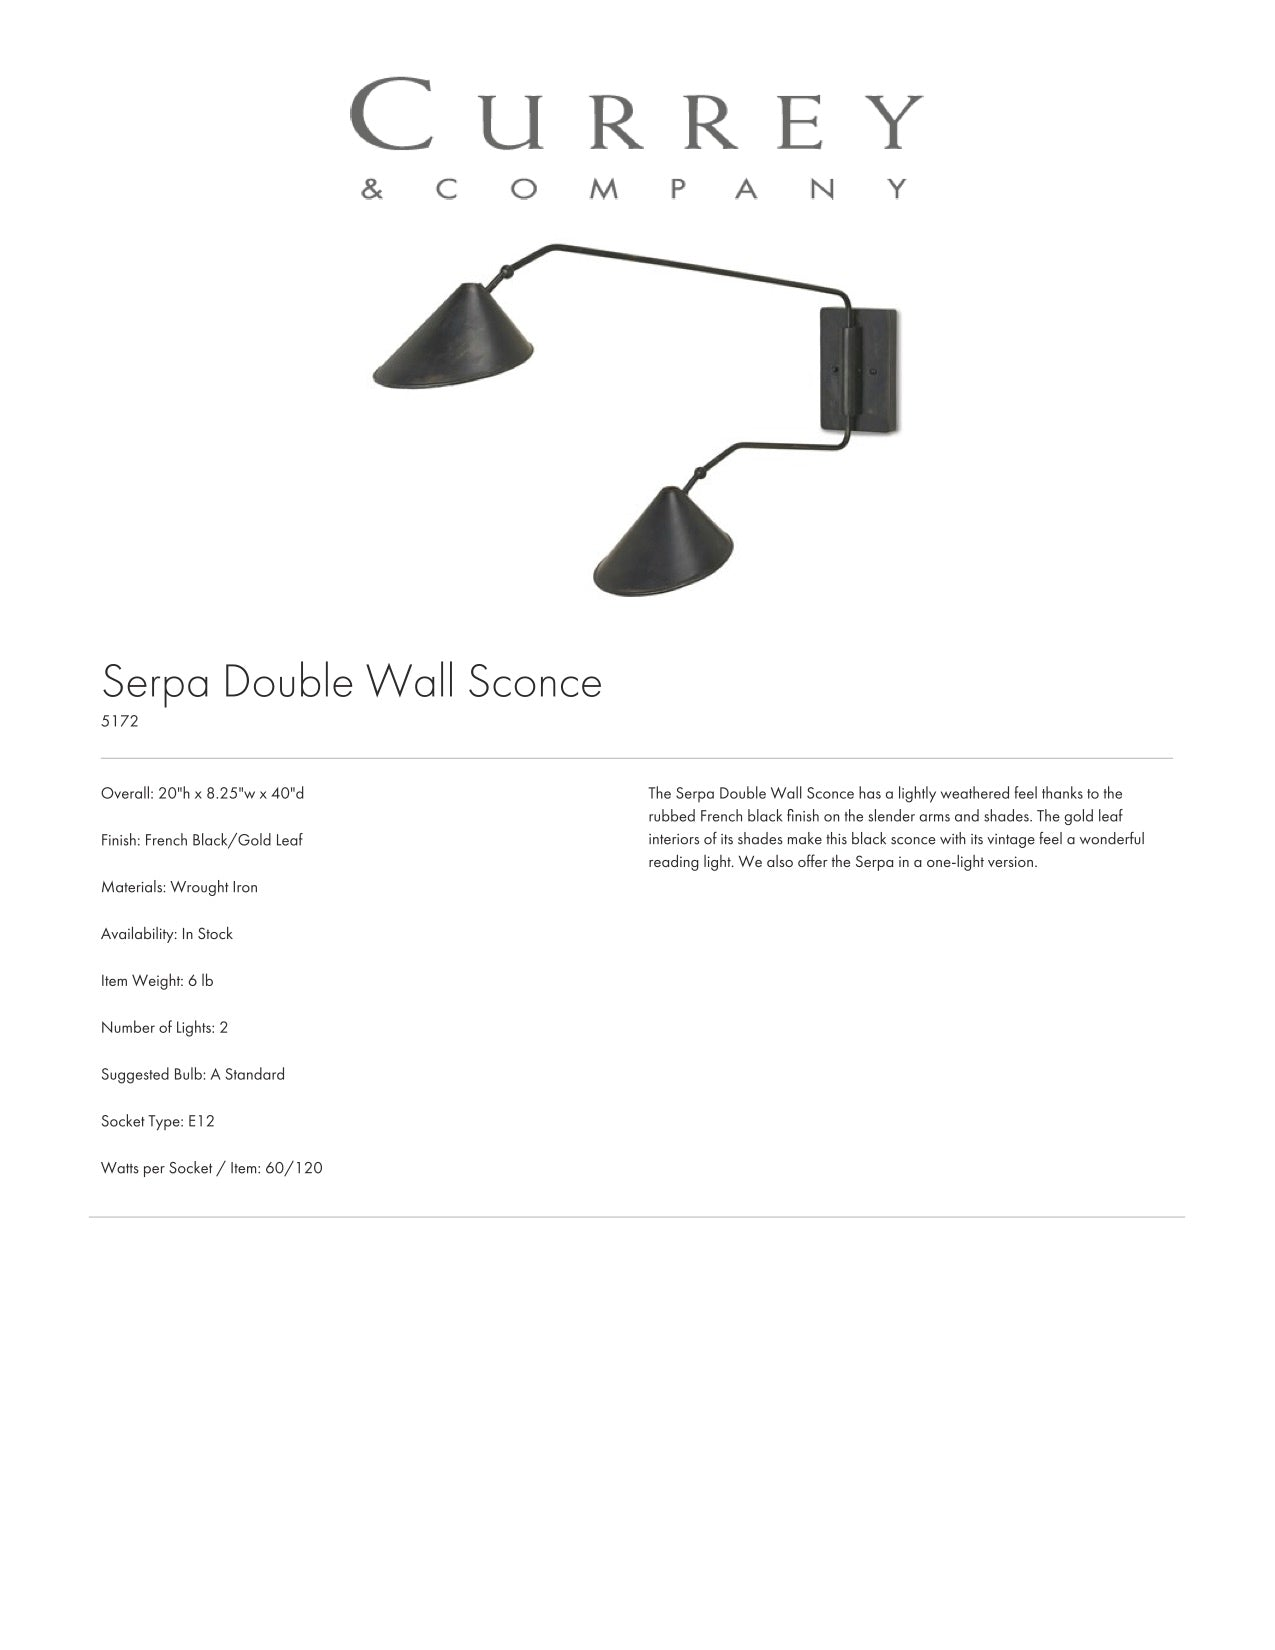 Currey & Company Serpa Double Wall Sconce Tearsheet